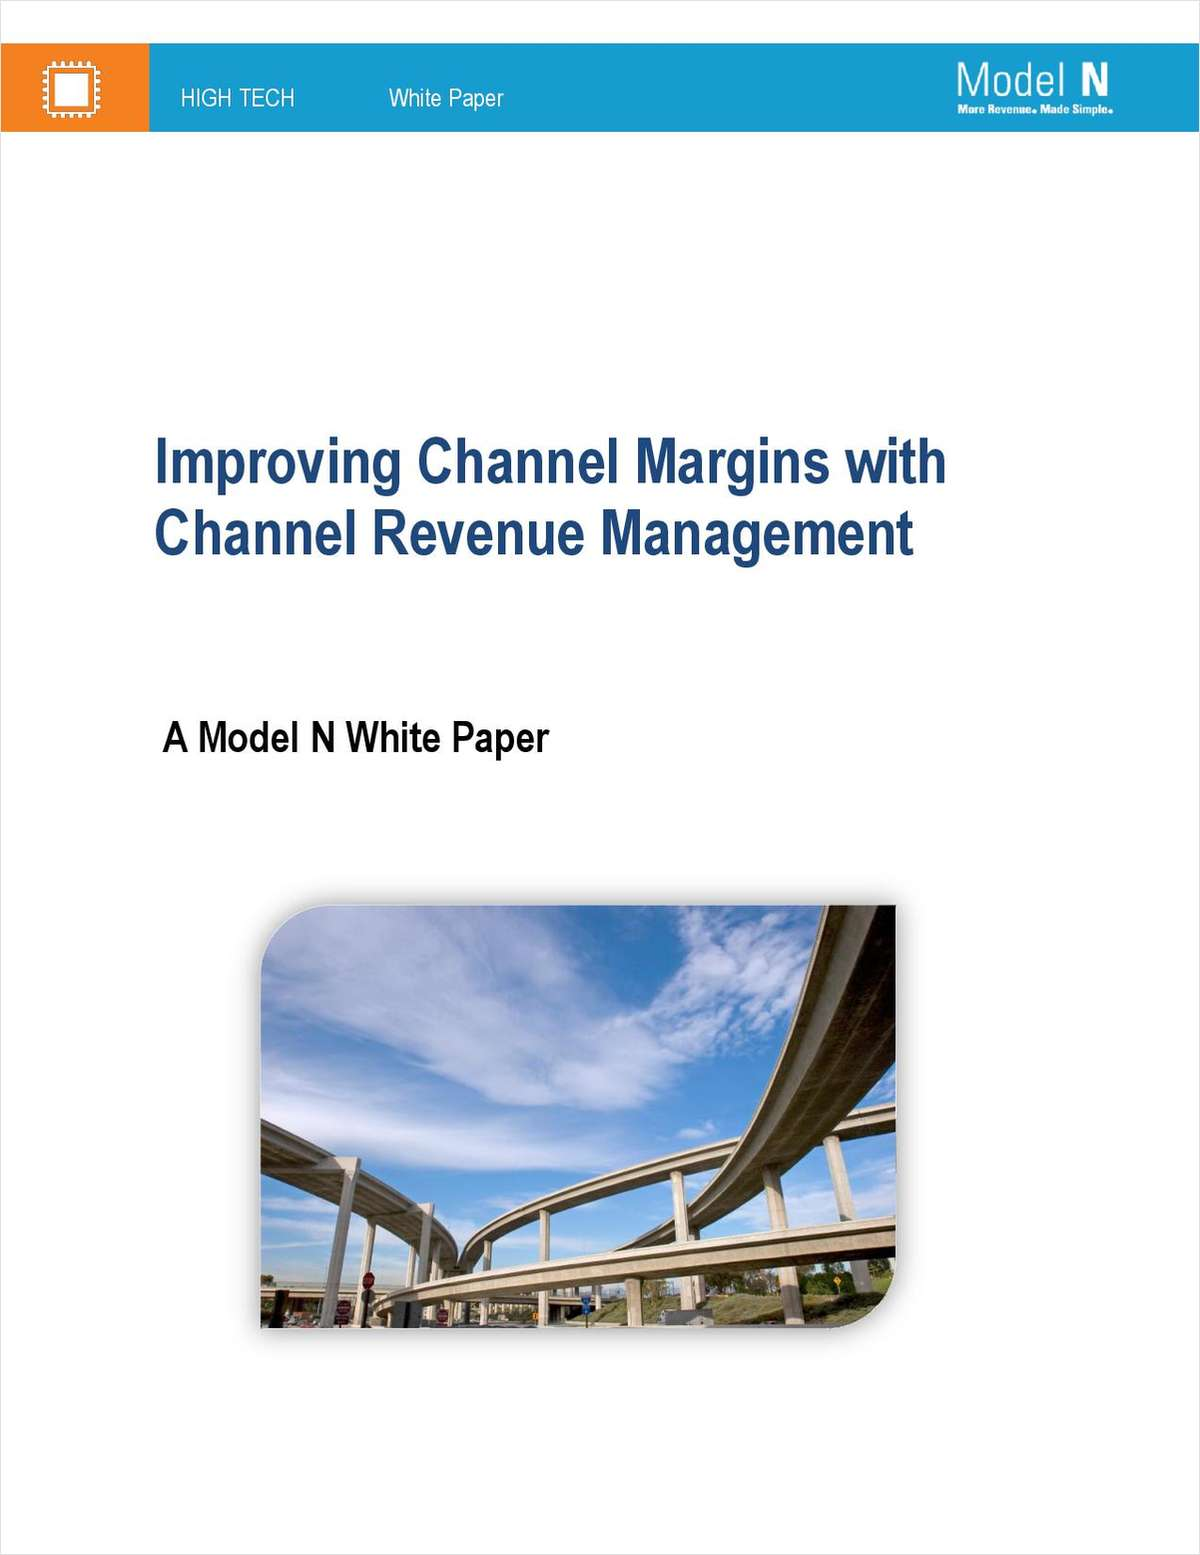 Improving Channel Margins with Channel Revenue Management